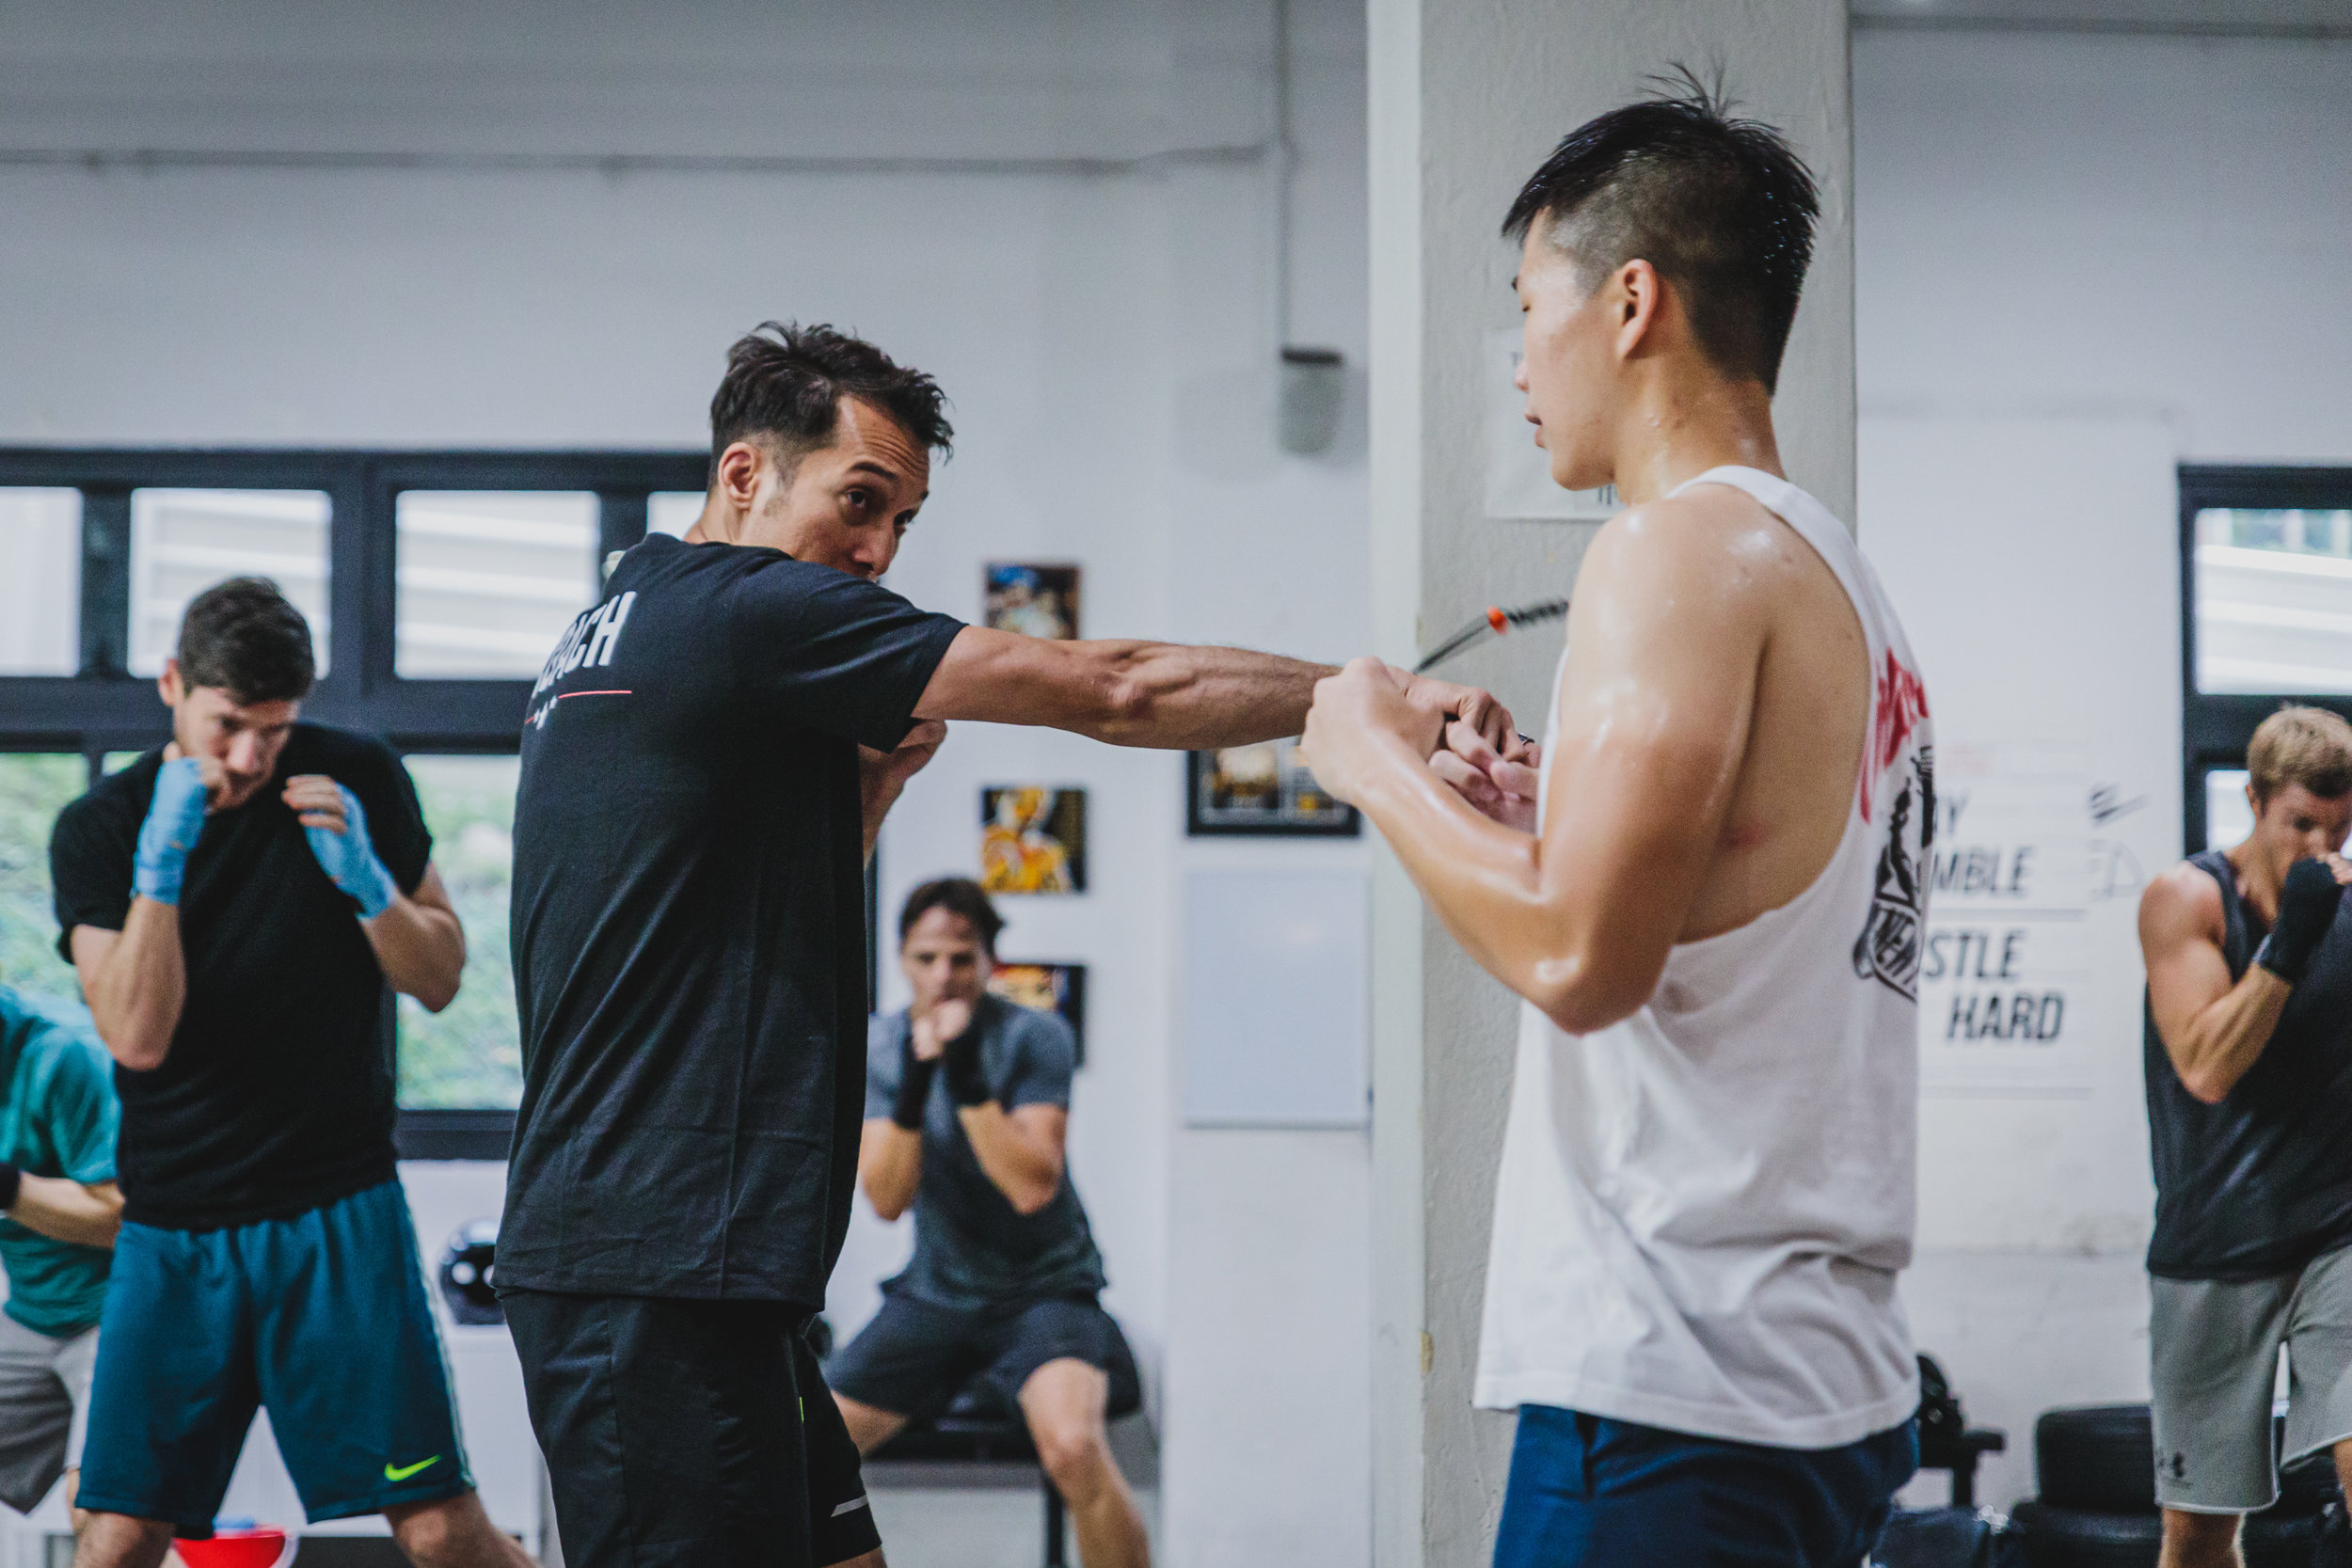 school of boxing - Technical boxing class to understand more about the noble art and the sweet science of boxing. Level up your boxing technical skills, coordination and speed in this class conducted by professional coaches with tons of boxing knowledge.